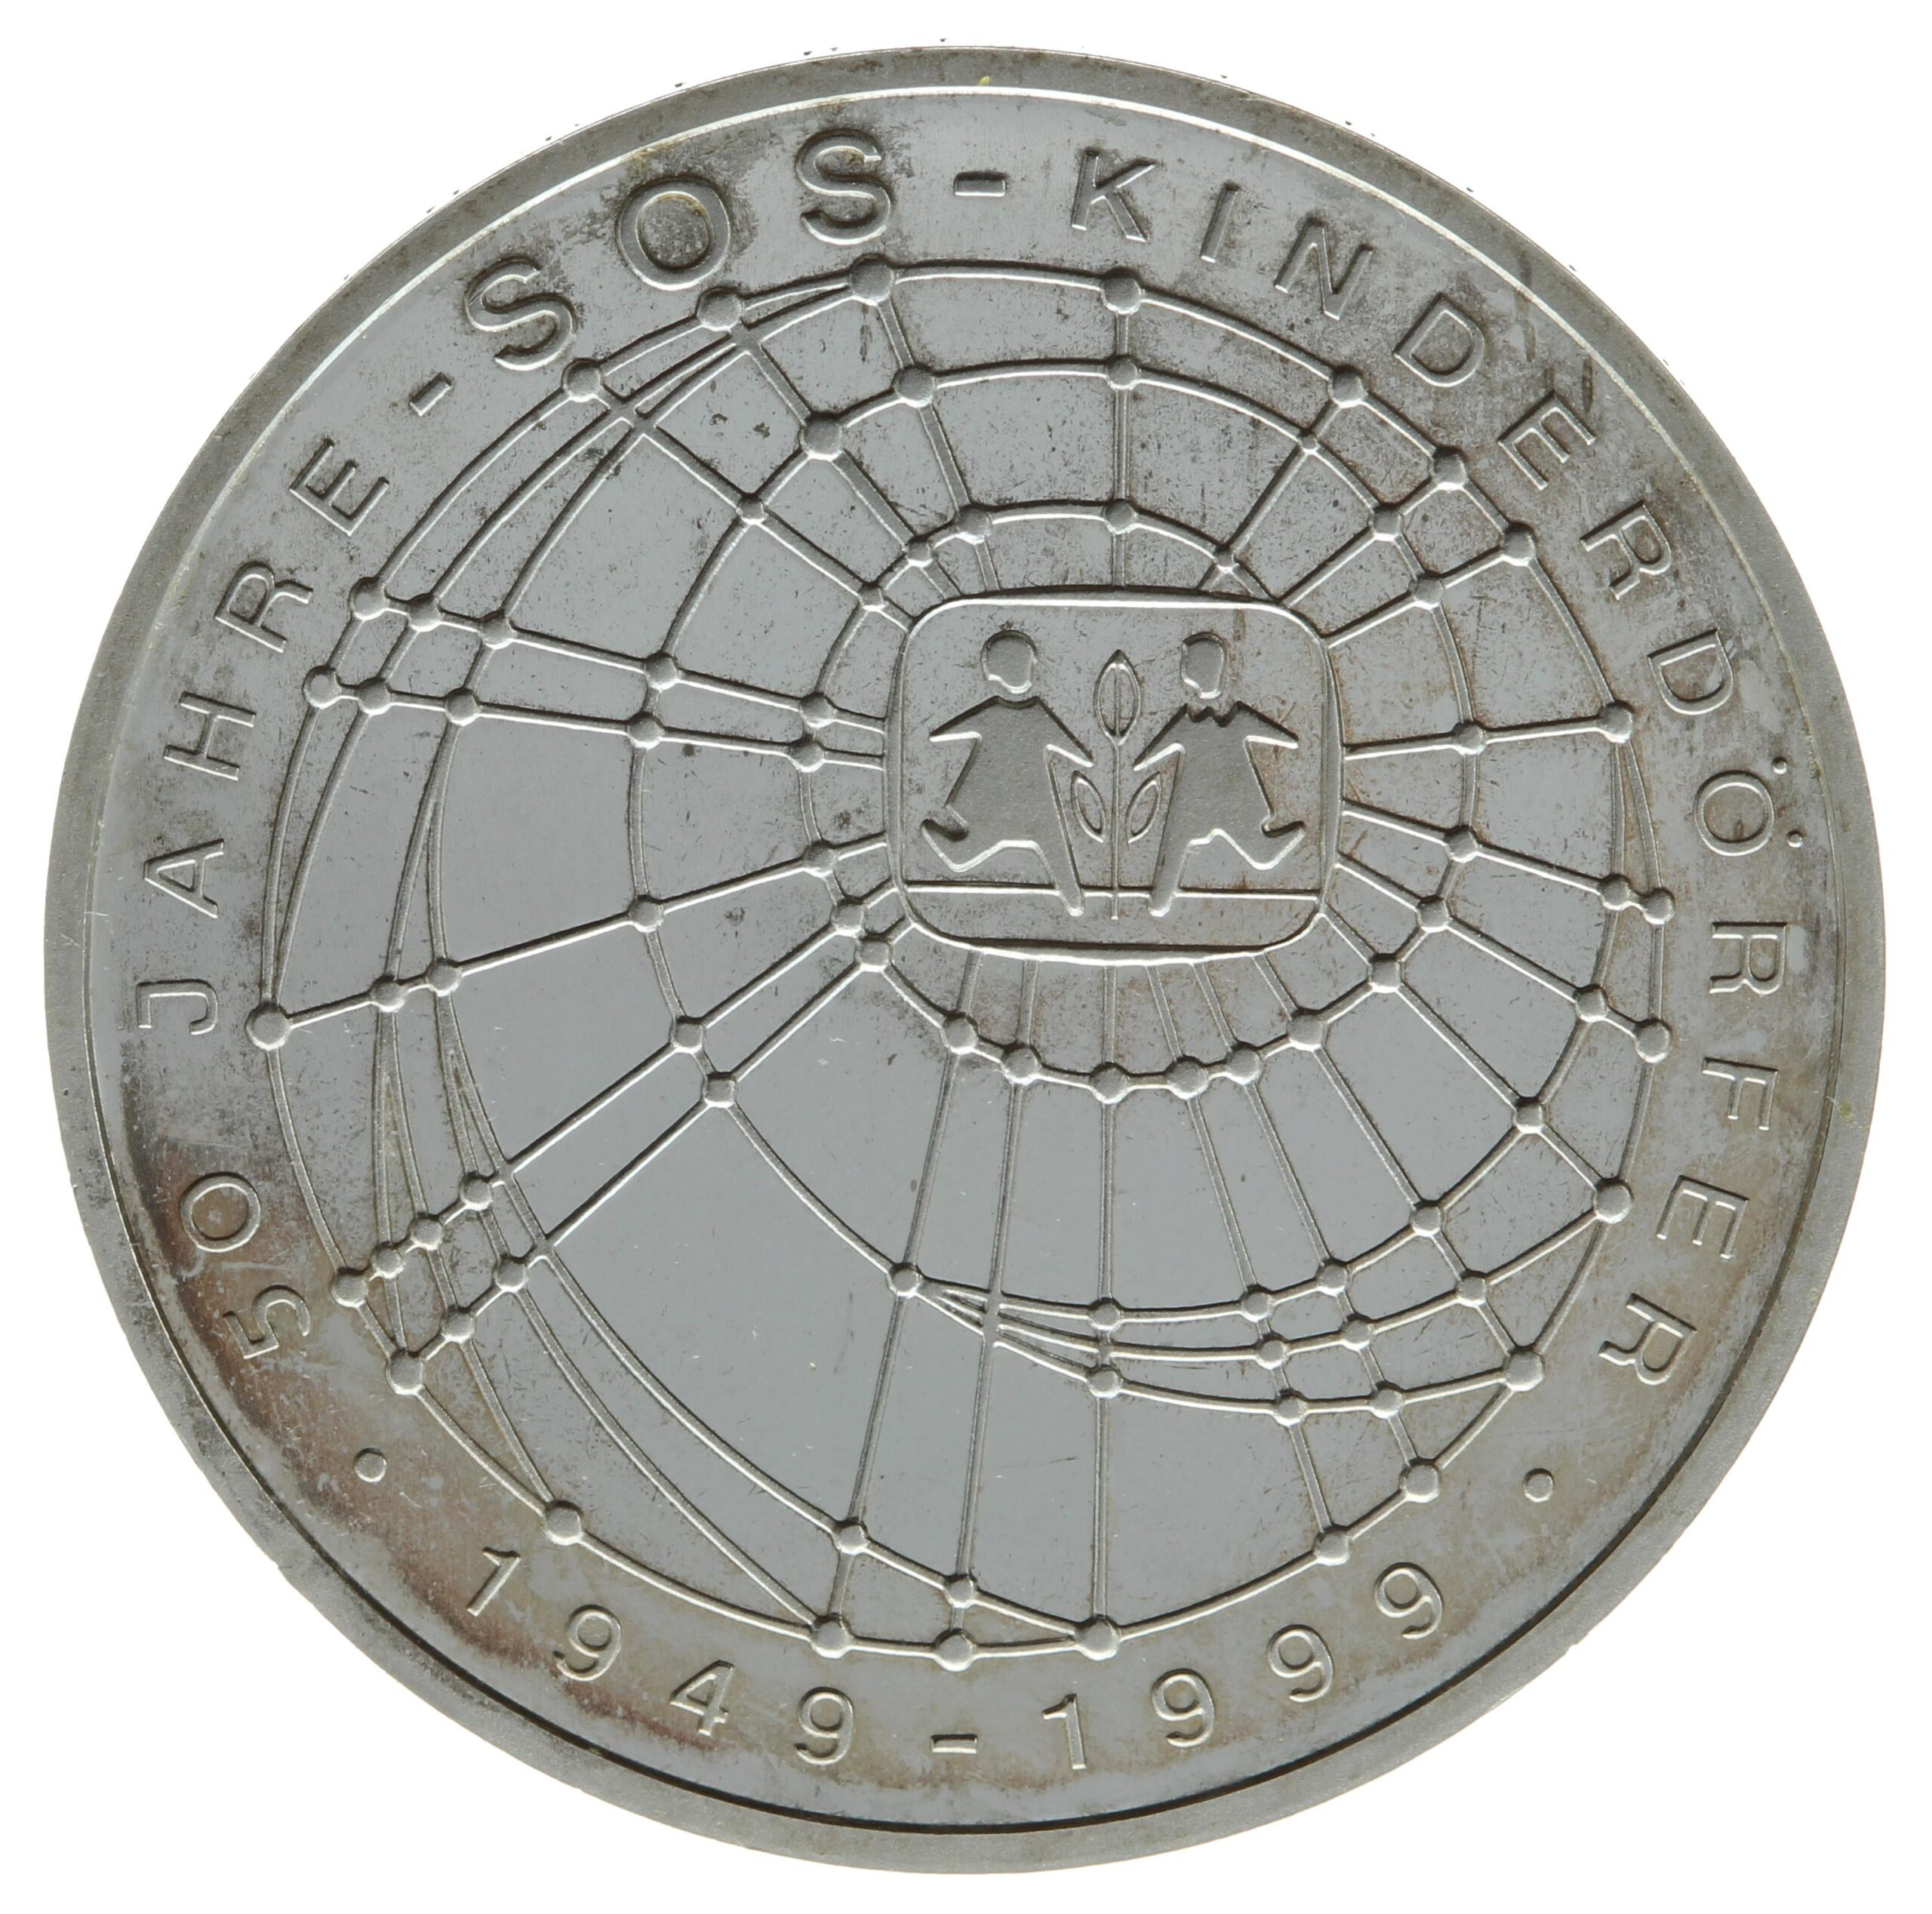 DE 10 Deutsche Mark 1999 A